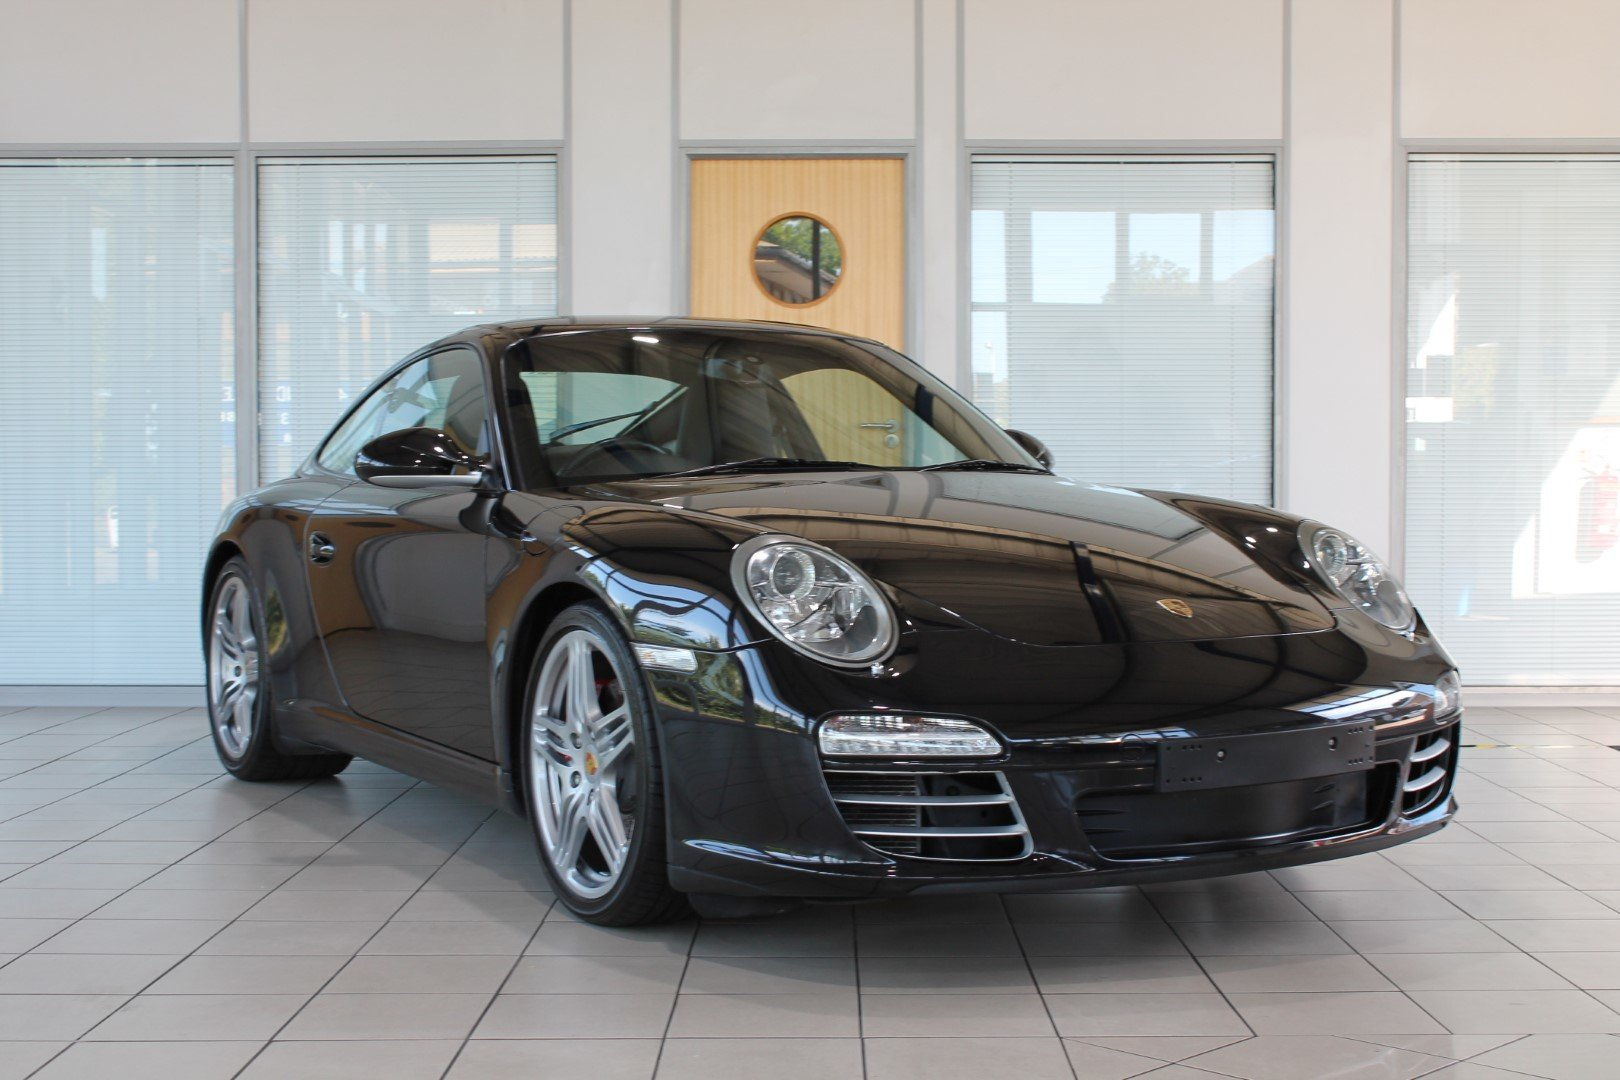 2010 Porsche 911 (997) 3.8 S PDK Coupe For Sale (picture 4 of 6)